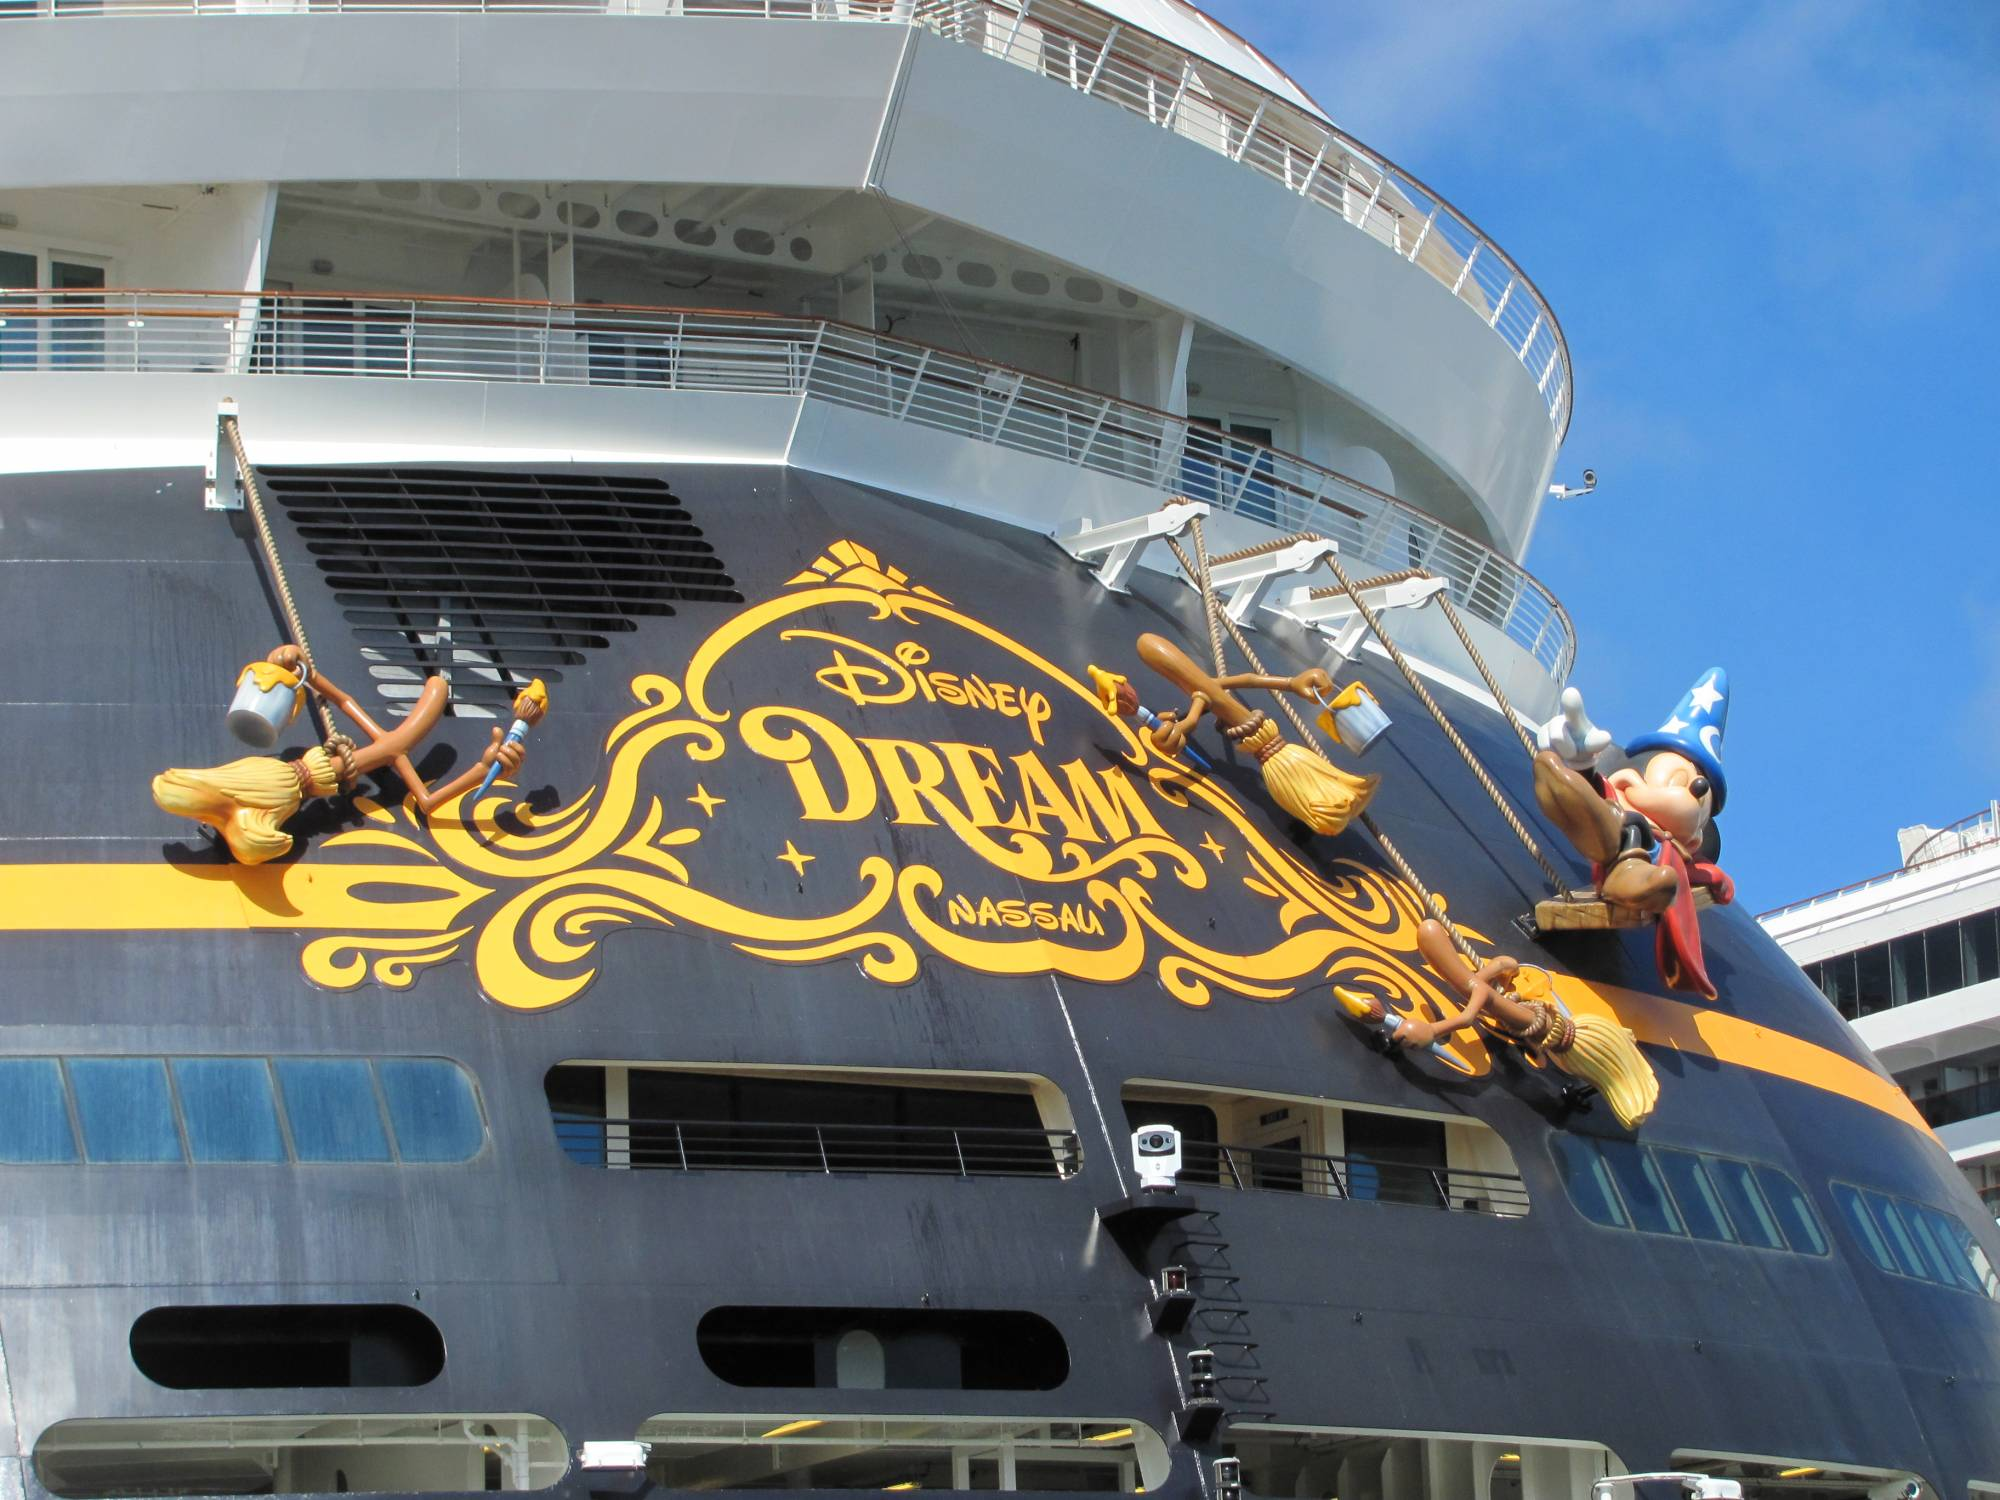 Disney Dream Stern